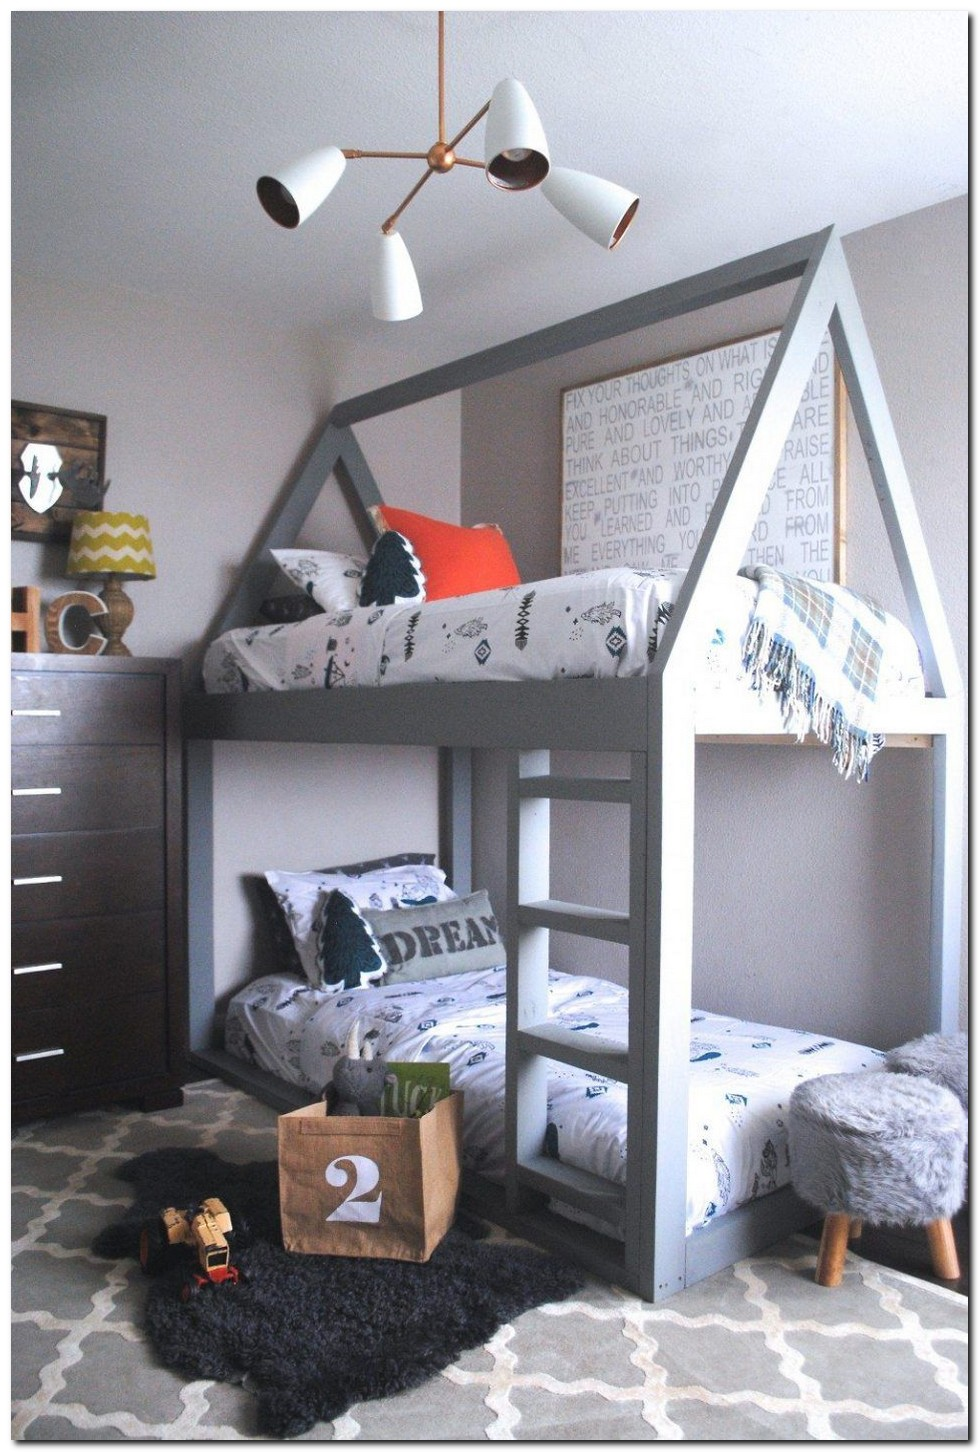 Permalink to Beds for Children: Choosing Bunk Beds for Kids